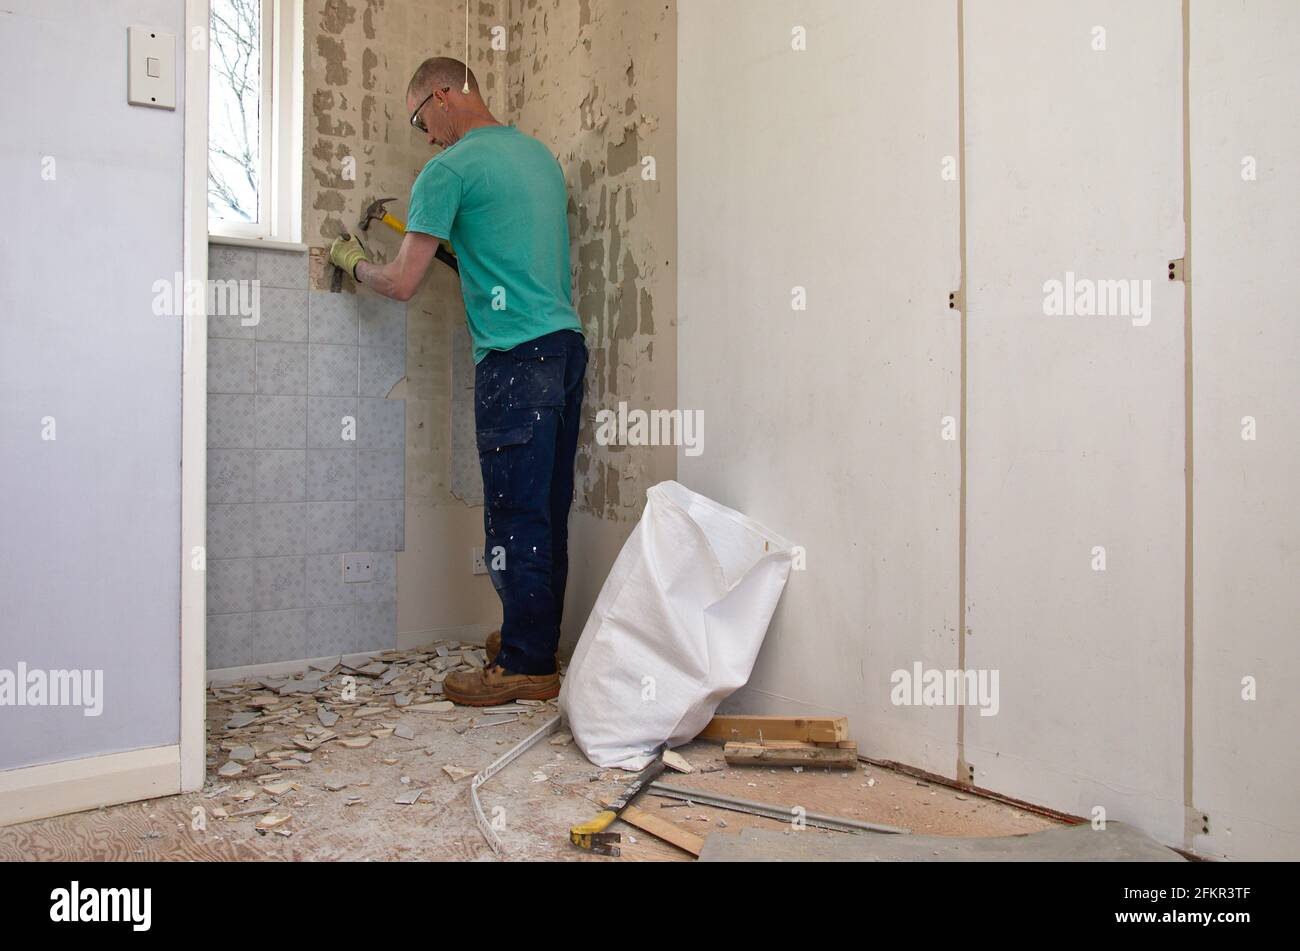 Handyman working on house renovation removing ceramic tiles from a wall. Stock Photo